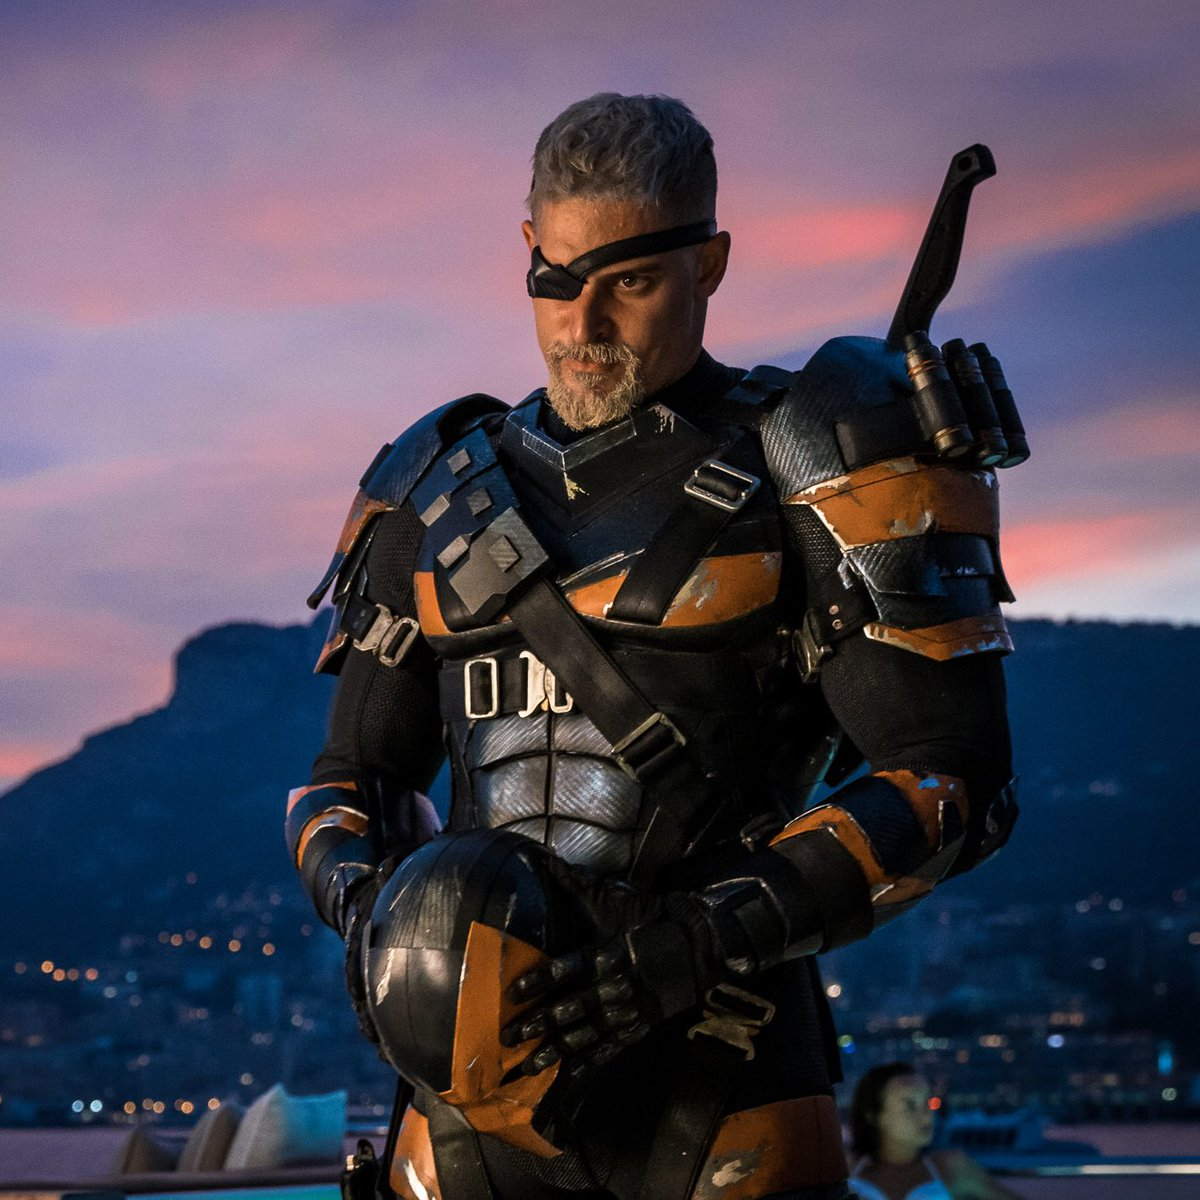 Deathstroke (DC Extended Universe)